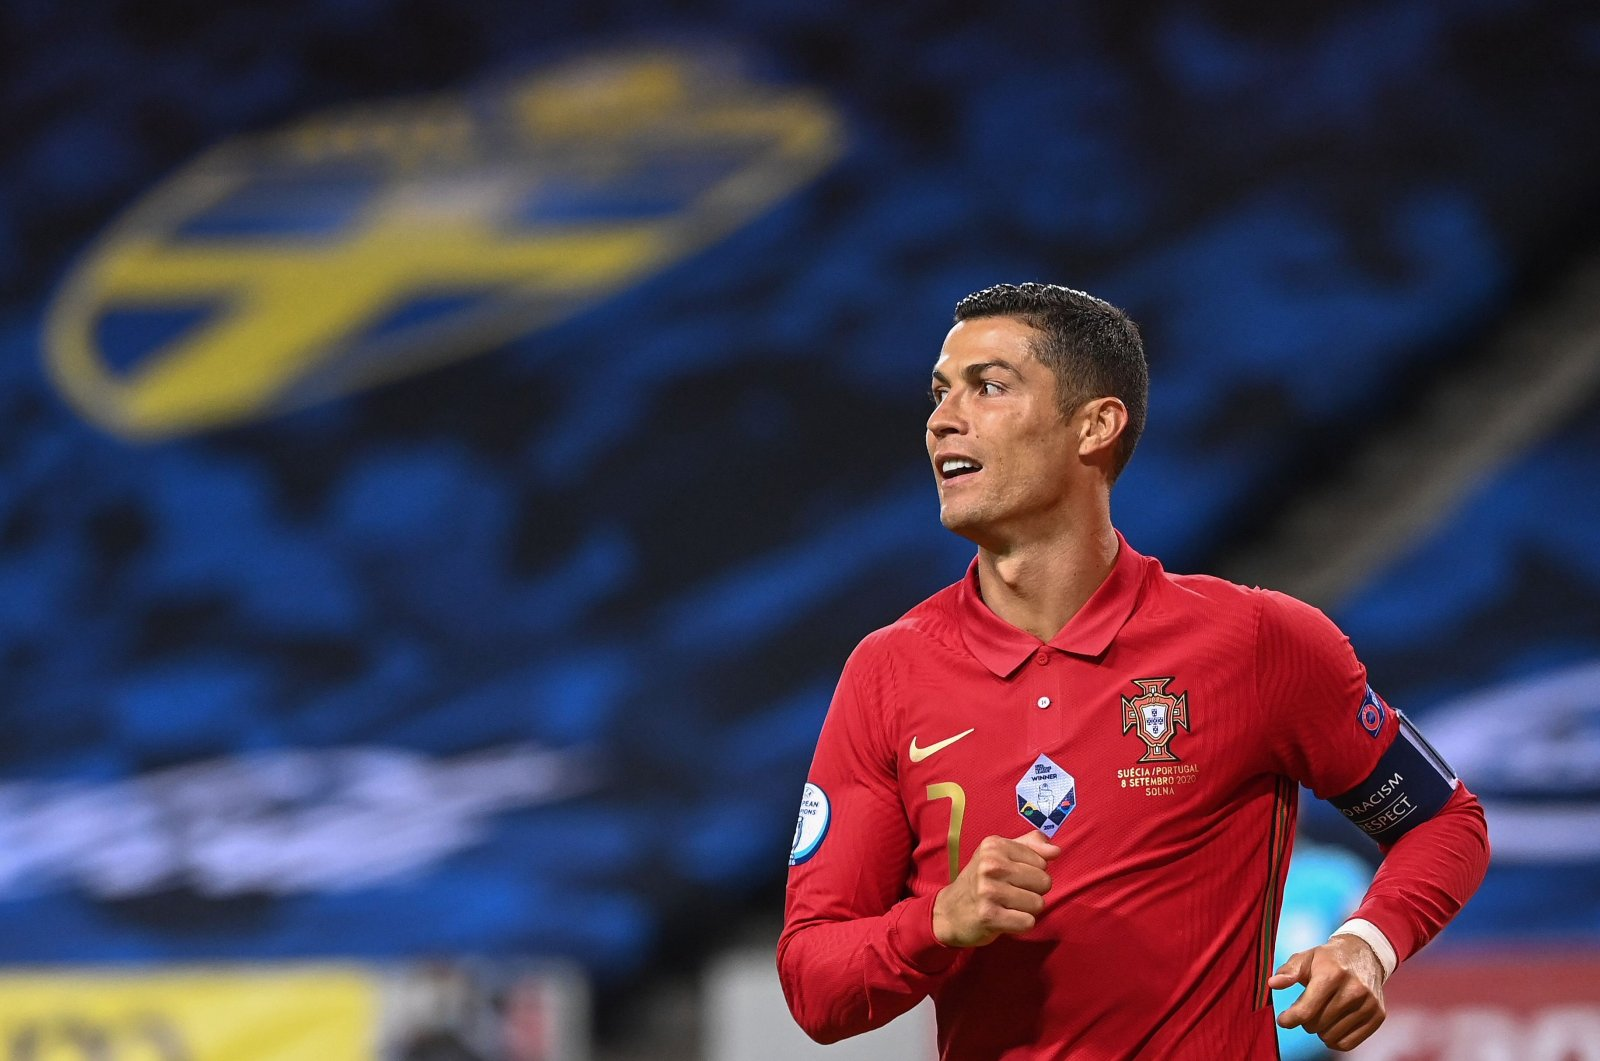 Portugal's forward Cristiano Ronaldo reacts during a UEFA Nations League match against Sweden, in Solna, Sweden, Sept. 8, 2020. (AFP Photo)